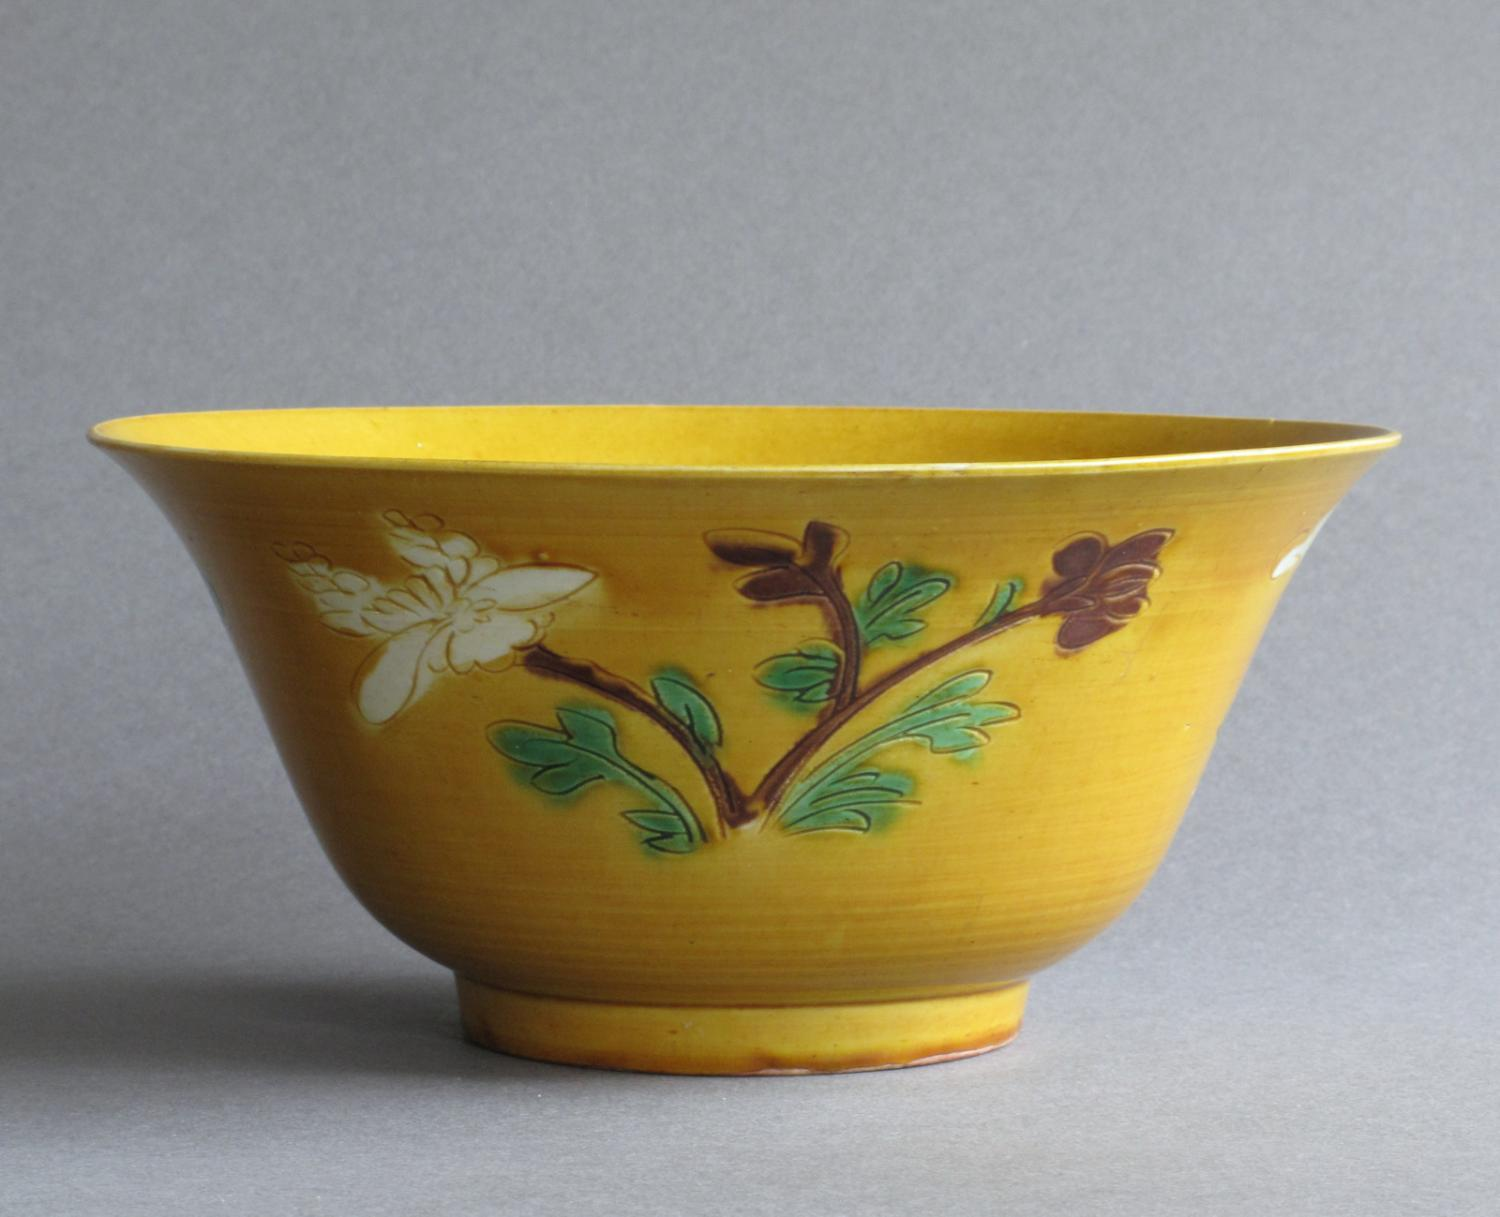 A Chinese biscuit decorated bowl, Kangxi